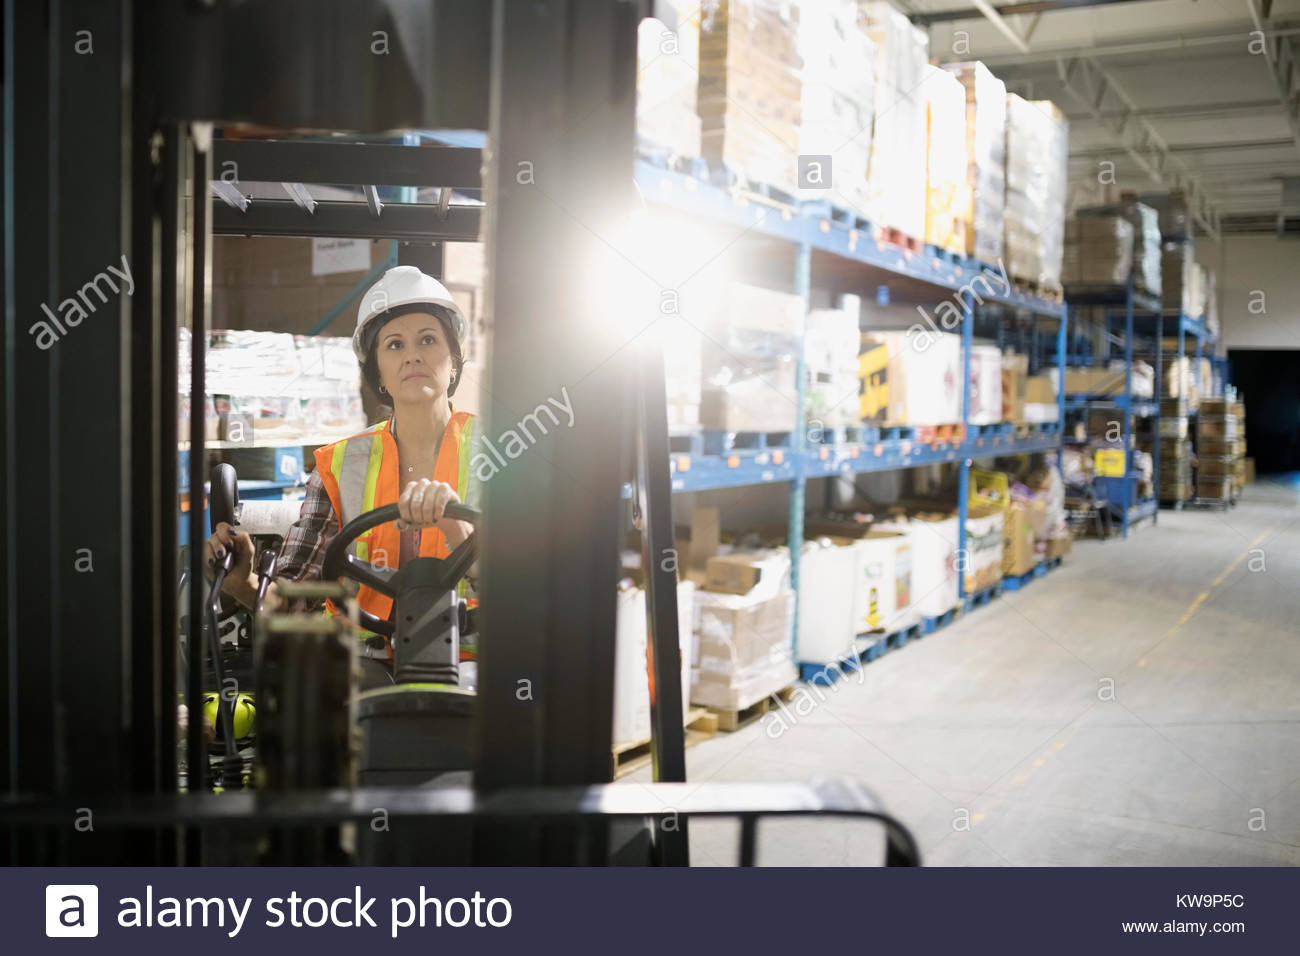 Female worker driving forklift in distribution warehouse - Stock Image